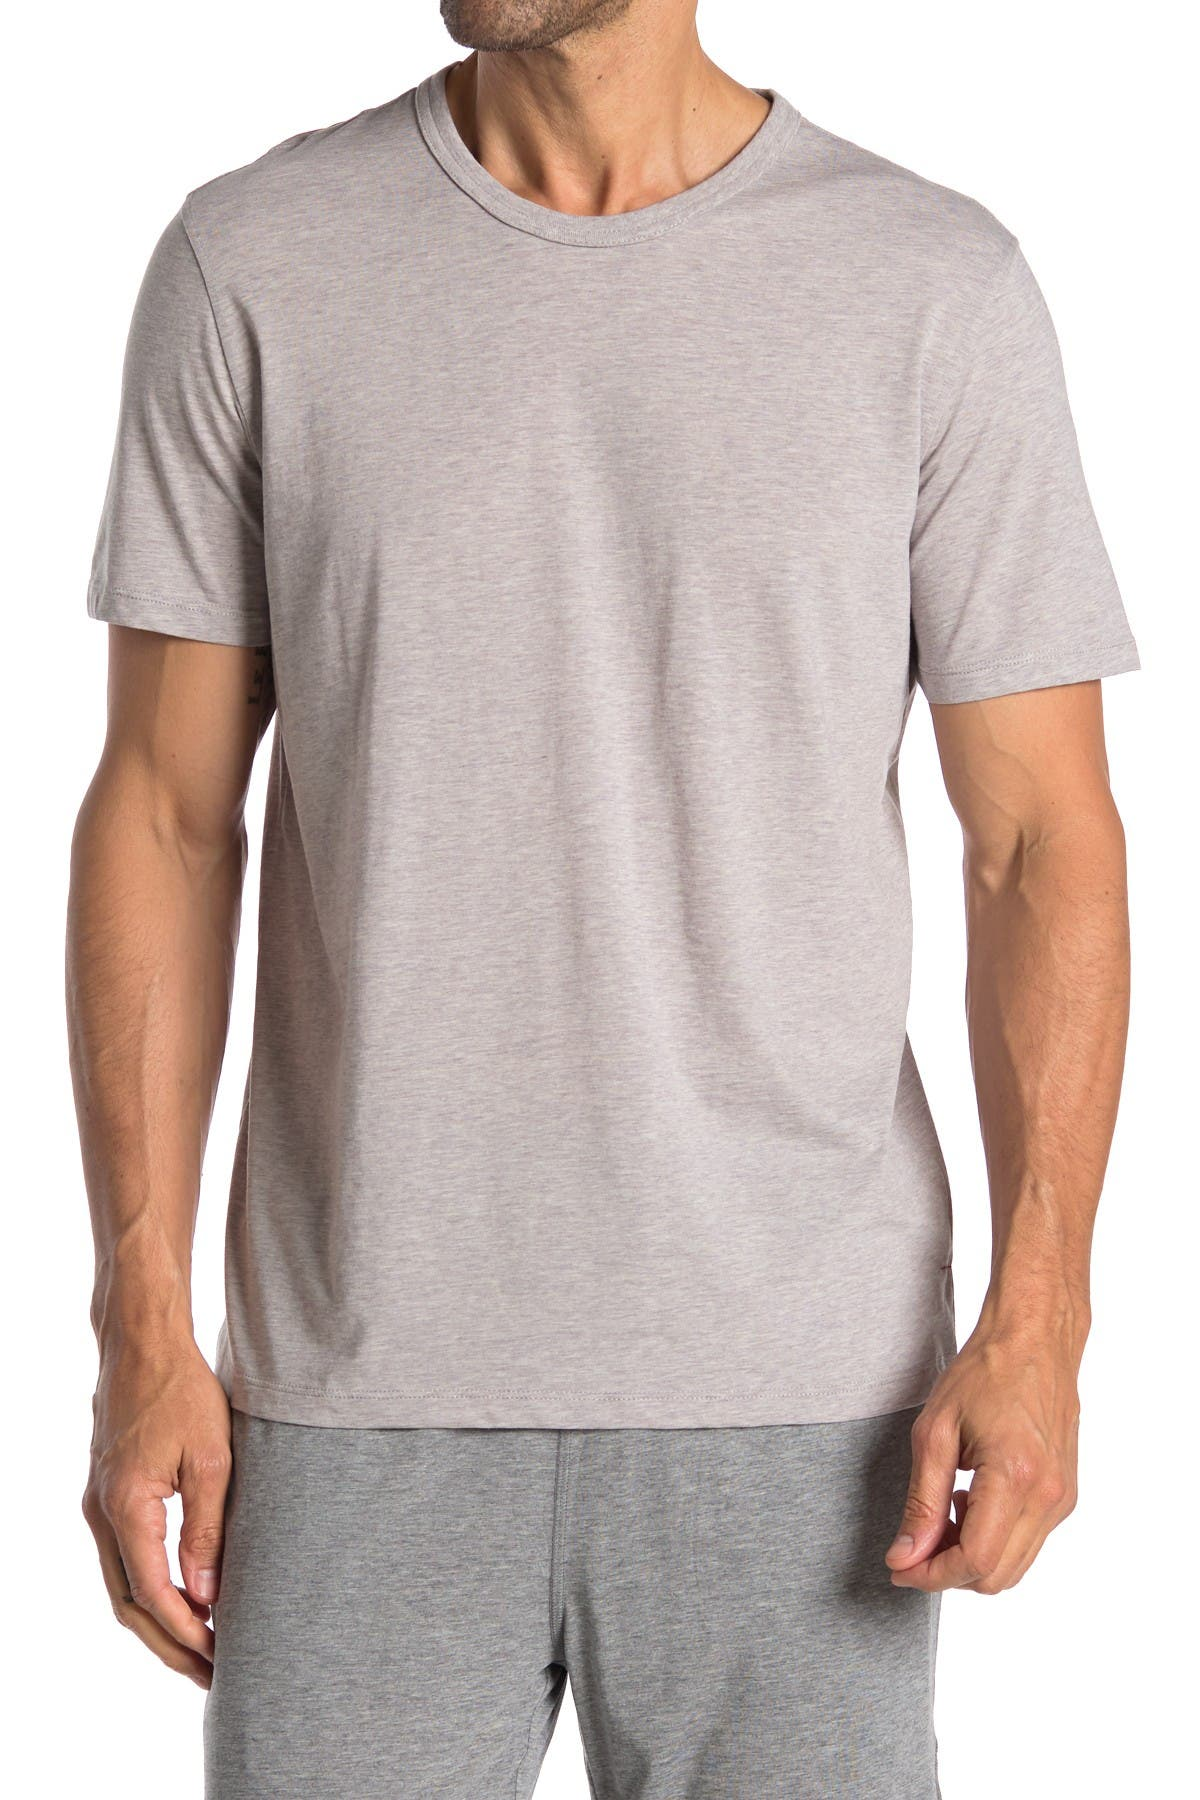 Image of Daniel Buchler Crew Neck Knit T-Shirt